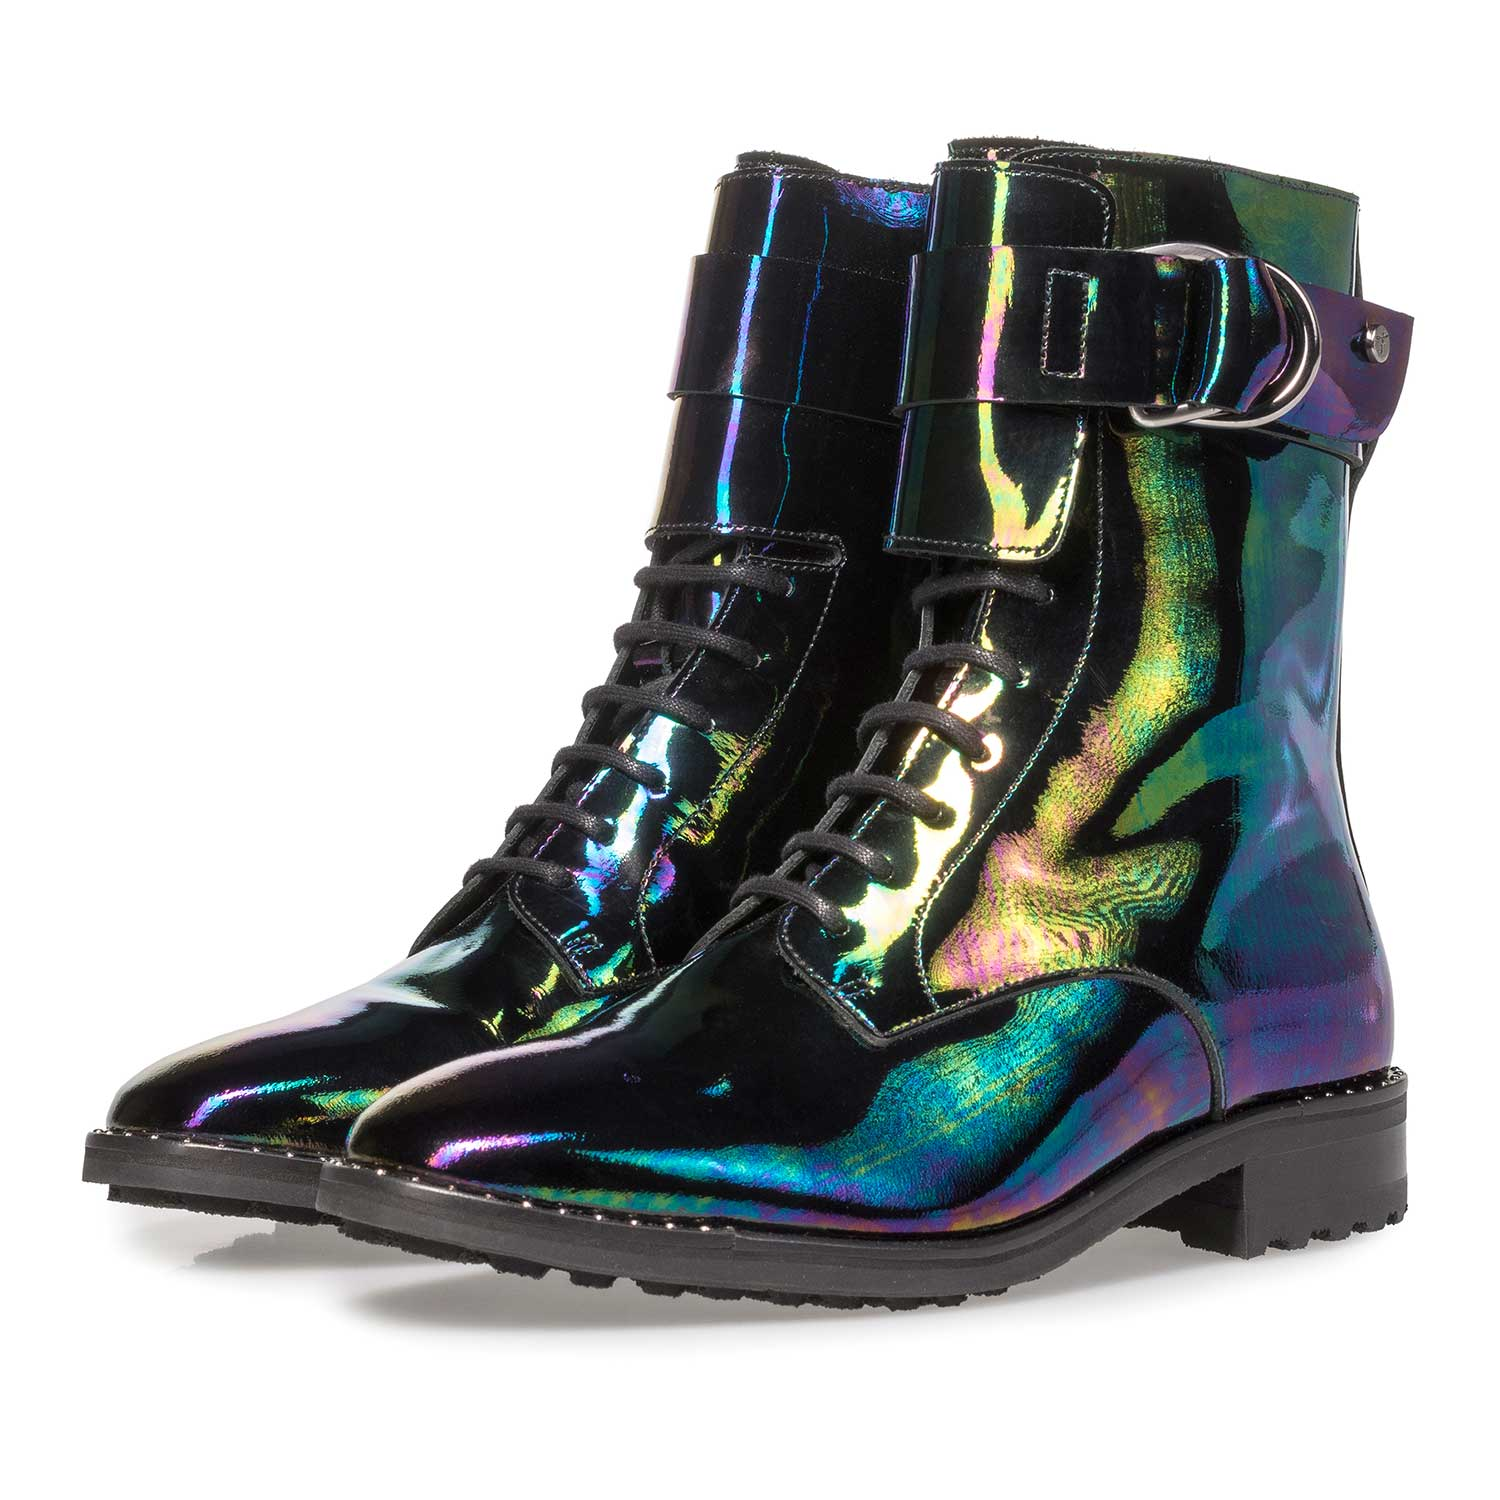 85711/00 - Multi-coloured patent leather lace boot